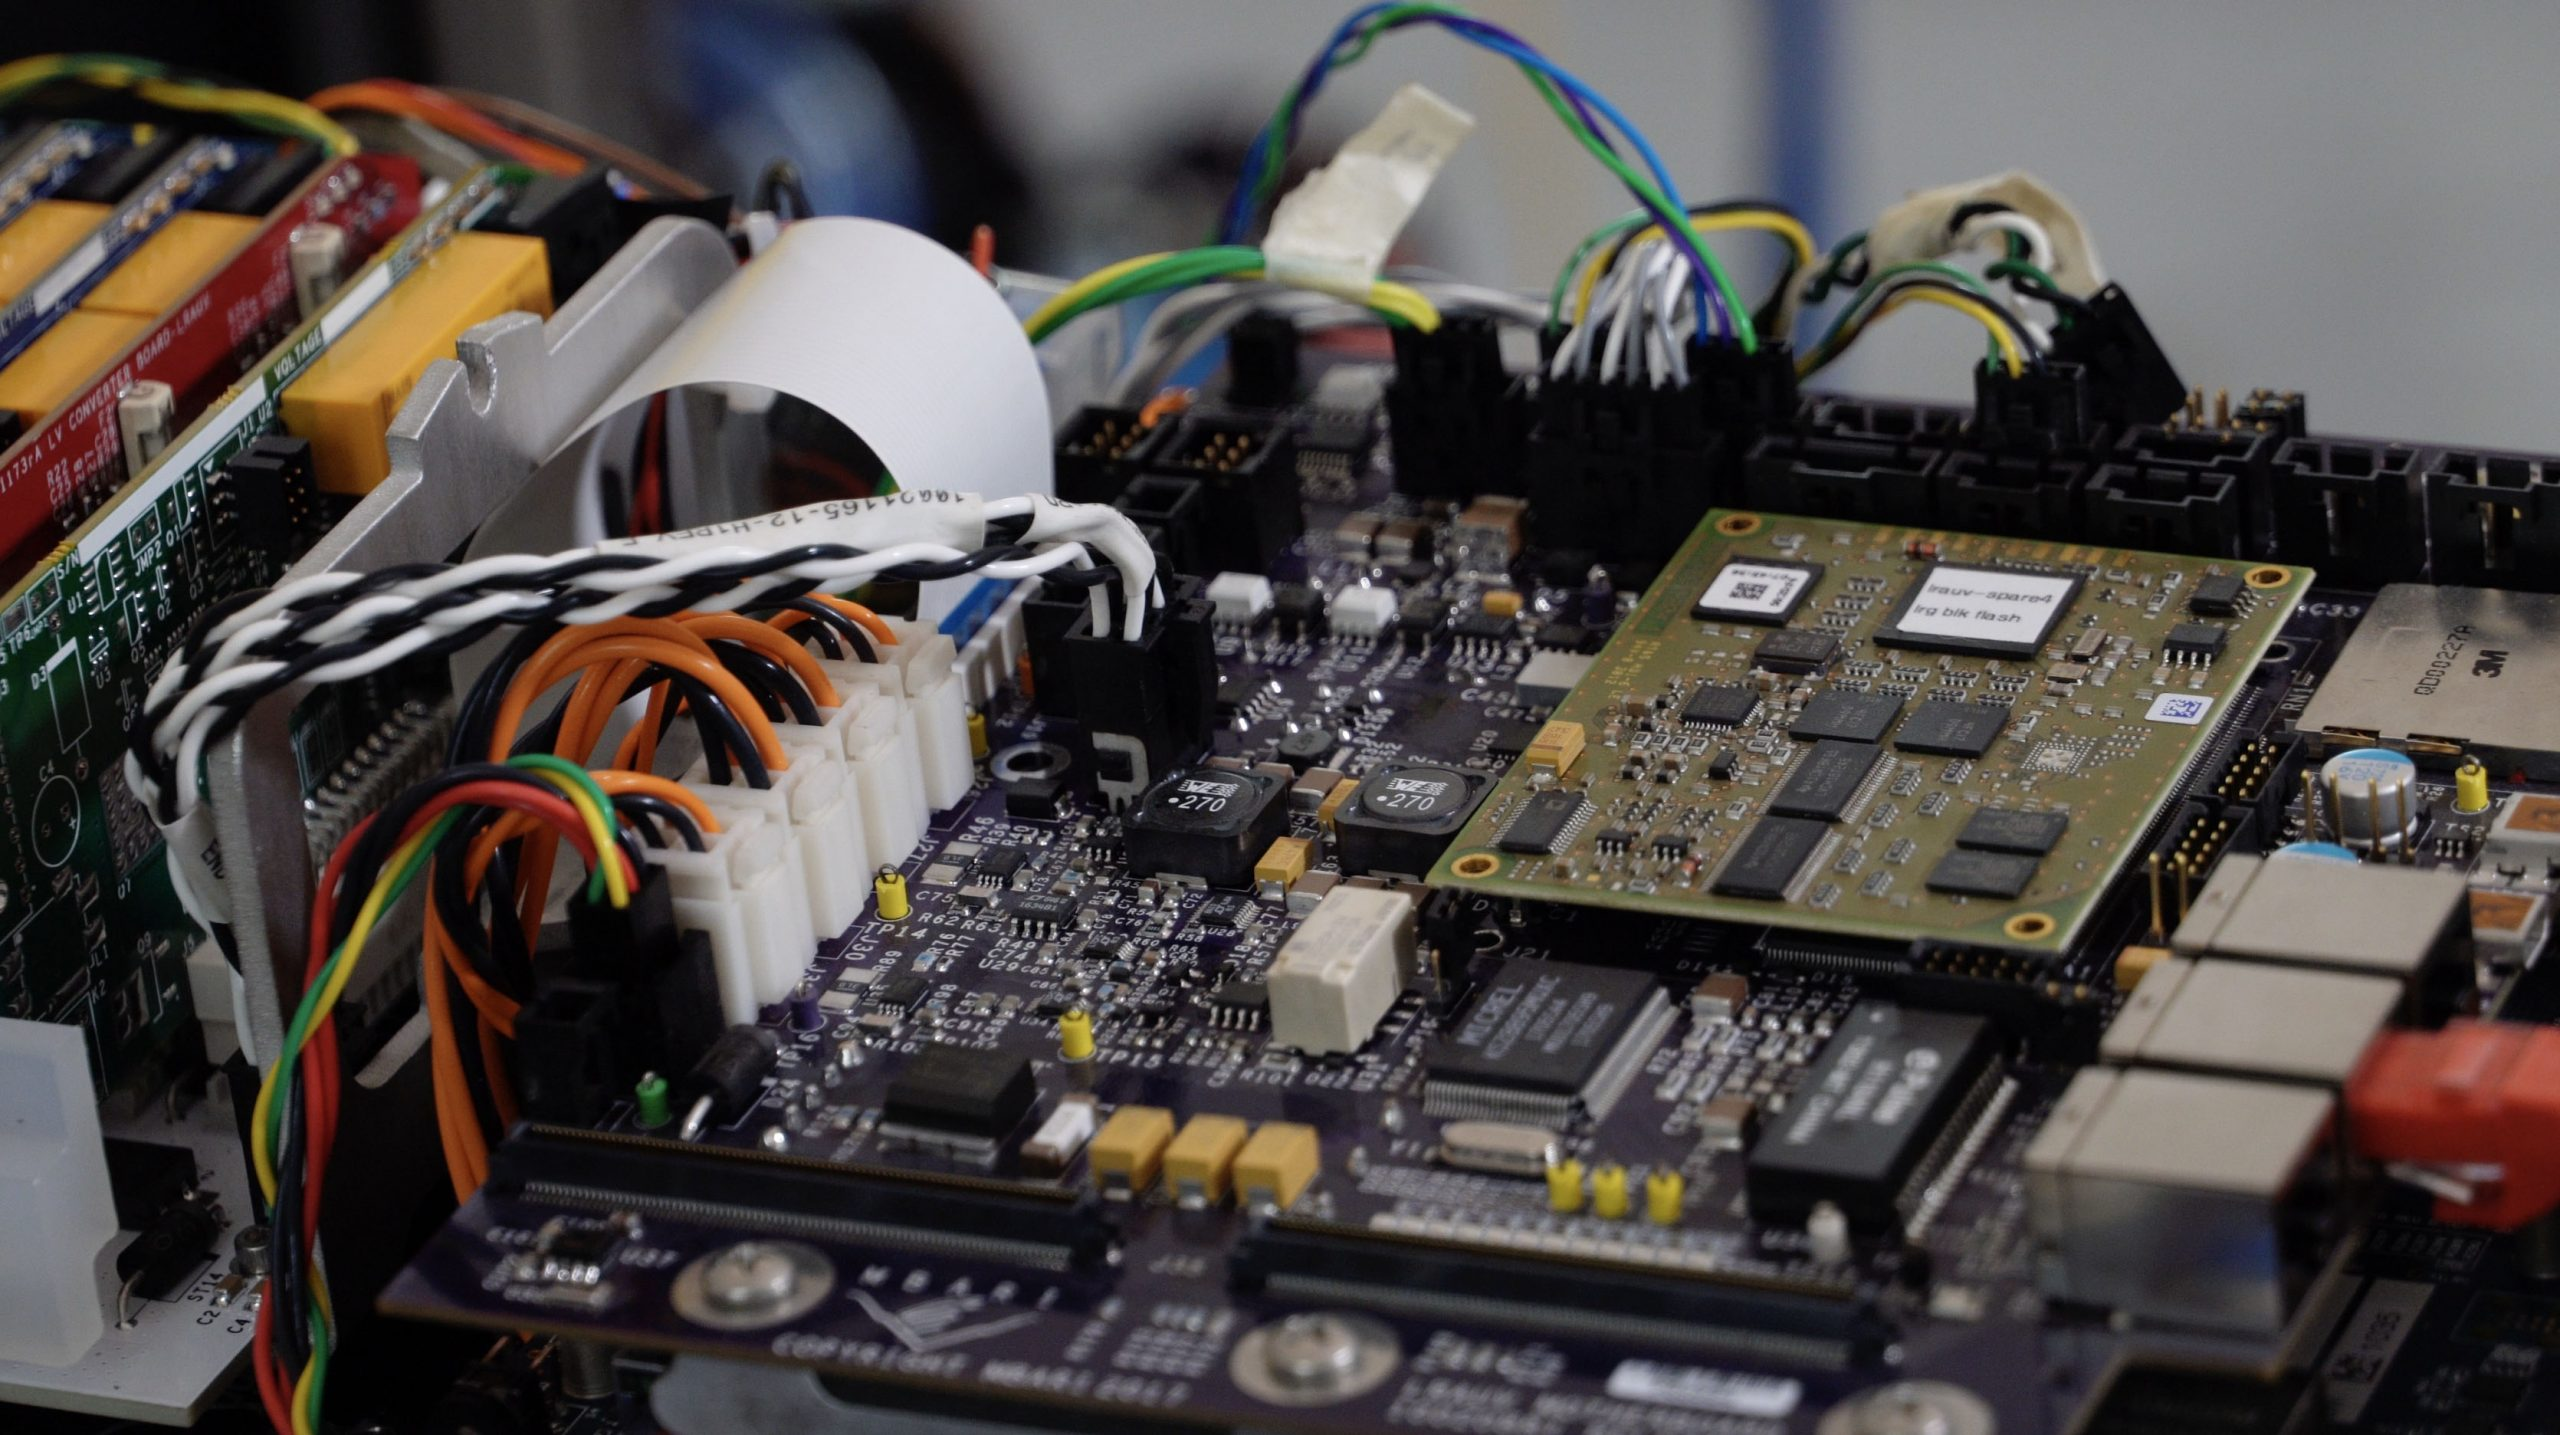 Pictured here is the LRAUV motherboard, which controls most of Mesobot's basic functions like power and data gathering from various sensors.